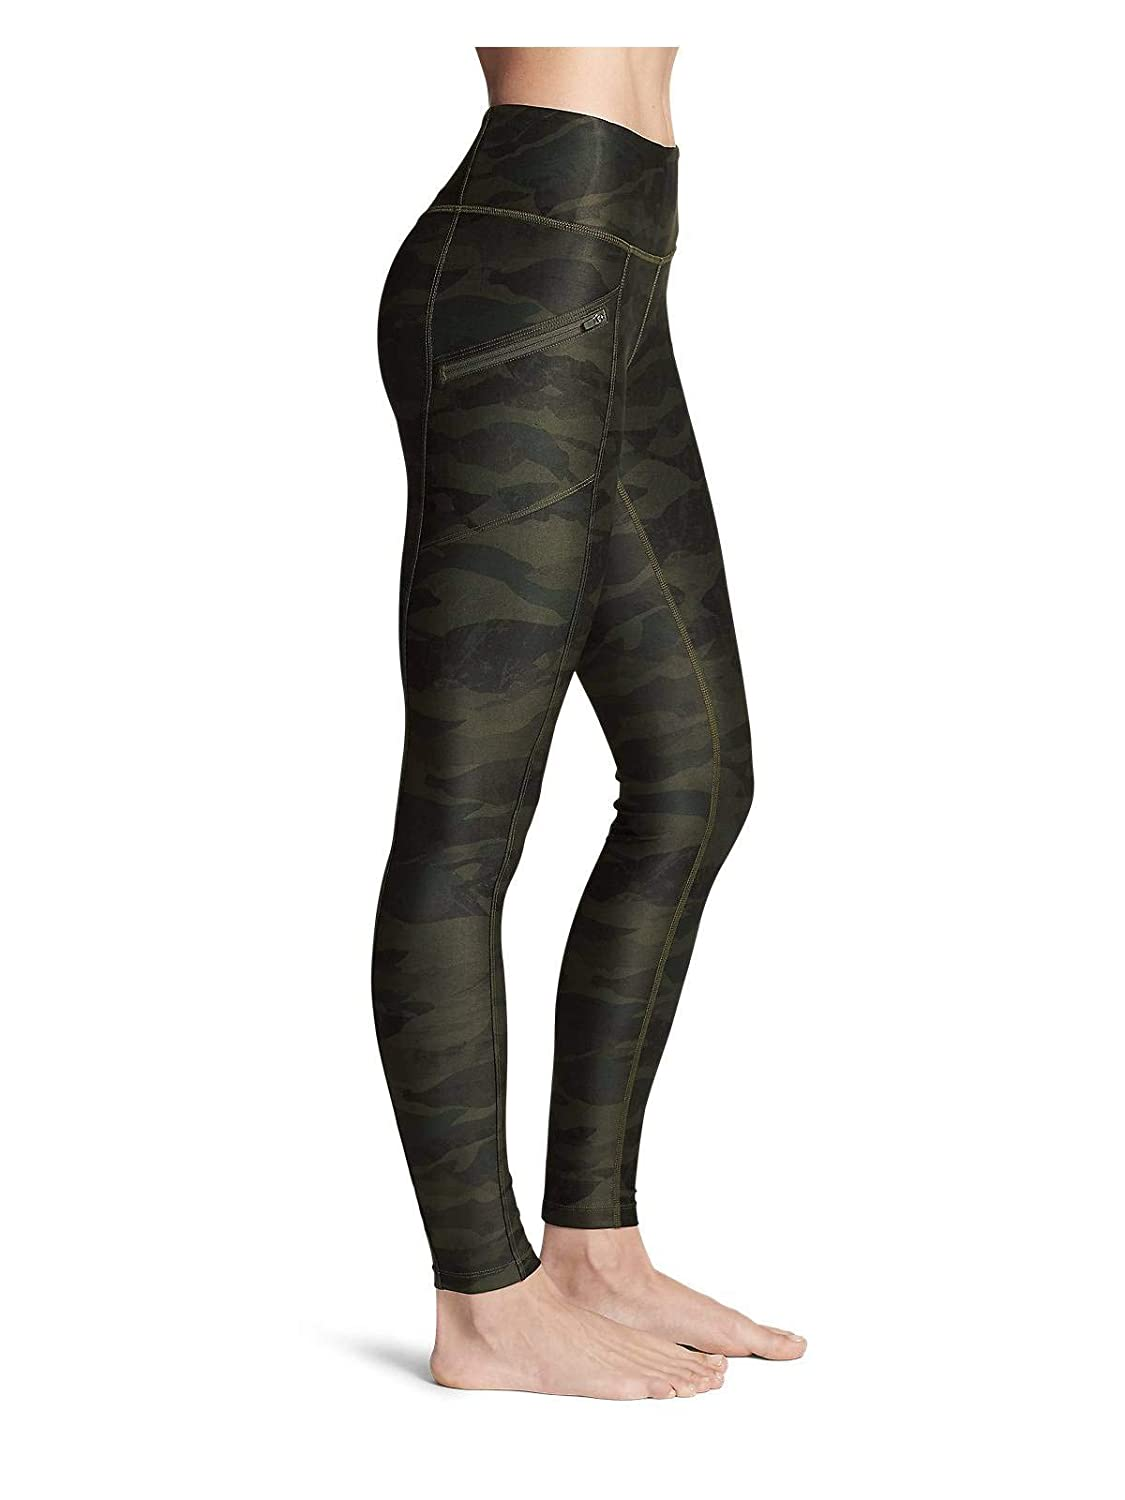 9382b4fe205a6 Eddie Bauer Women's Trail Tight Leggings - Printed at Amazon Women's  Clothing store: